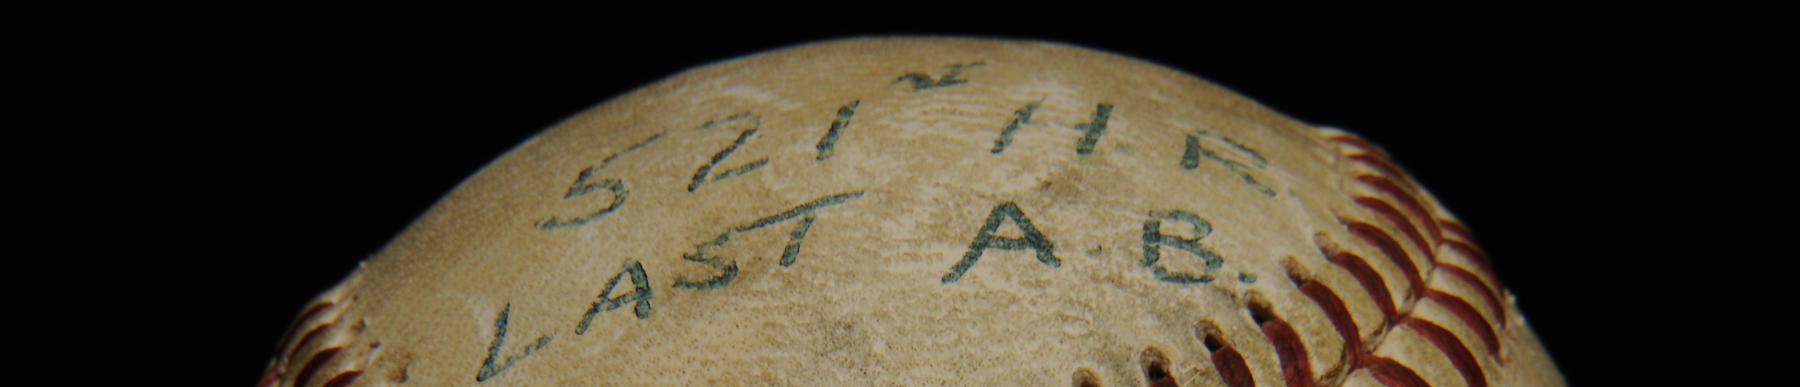 Detail of ball from Ted Williams' last home run - B-172-60 (National Baseball Hall of Fame Library)